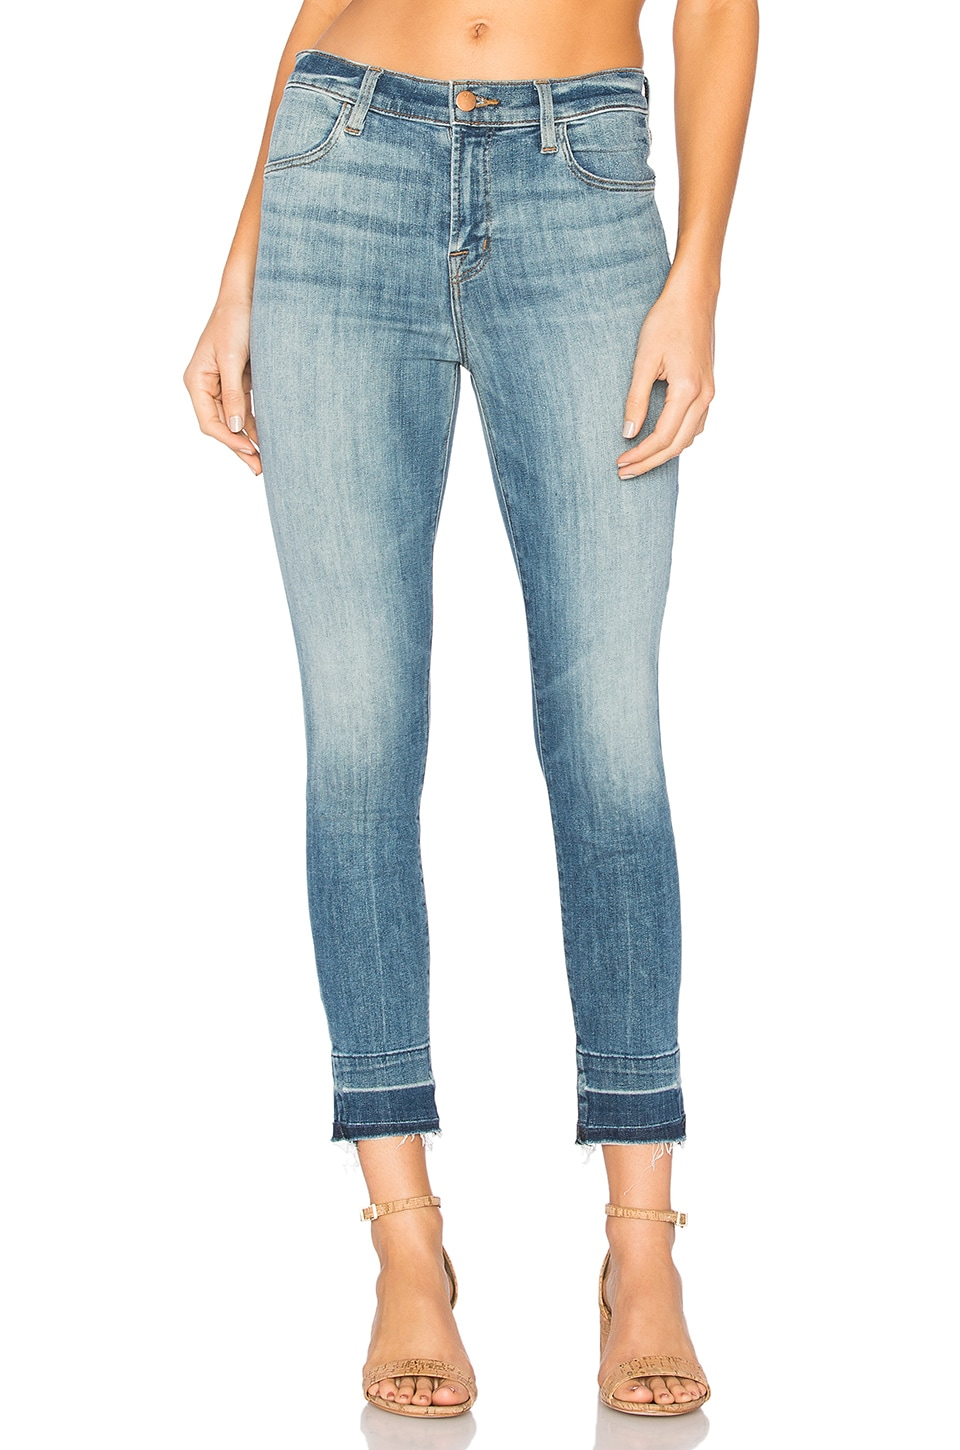 J Brand Alana High Rise Crop Skinny in Corrupted